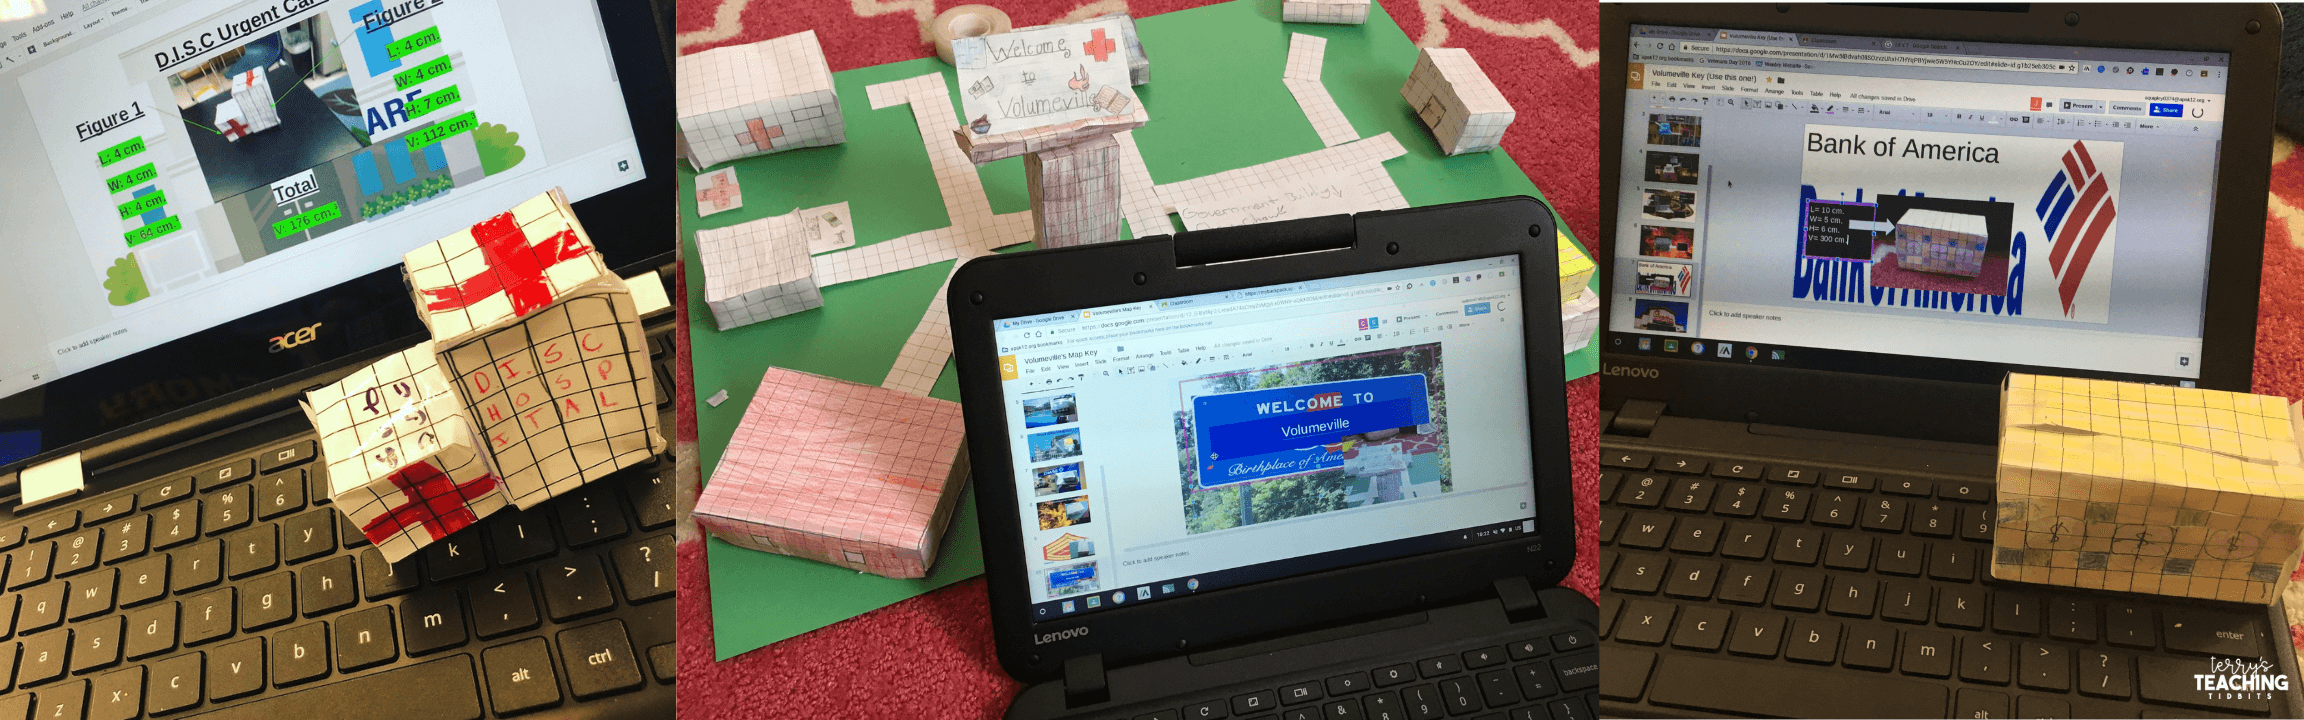 Volumeville Student Projects